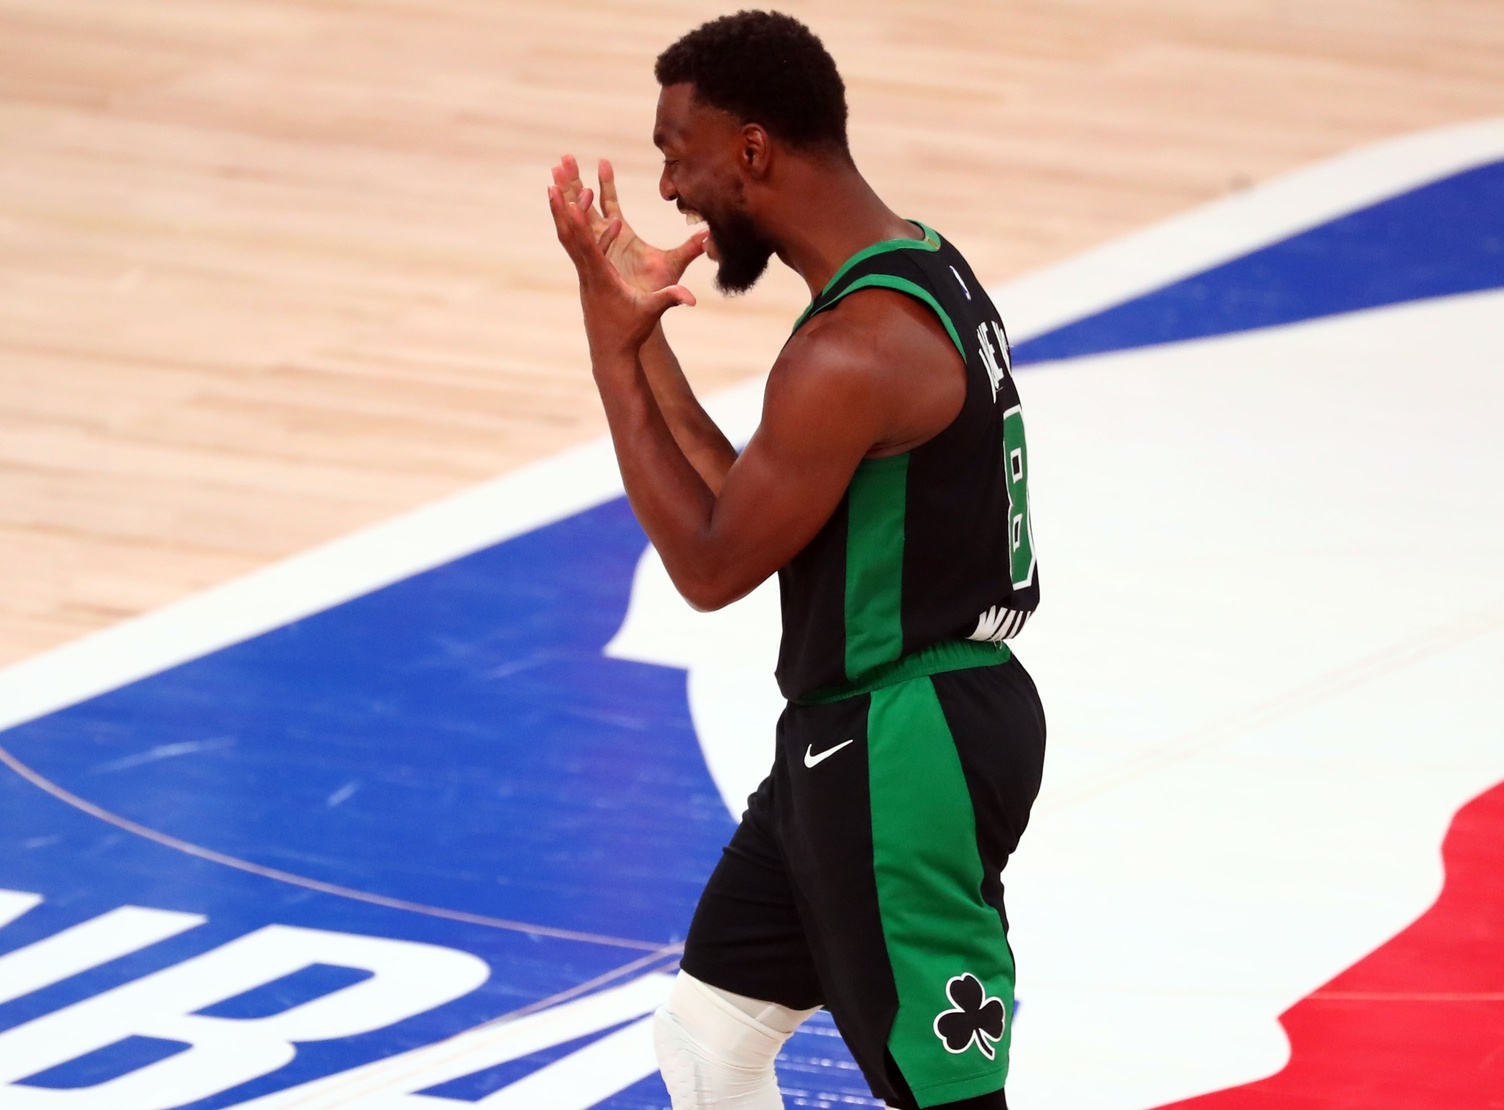 A few thoughts on Kemba Walker's performance in the playoffs